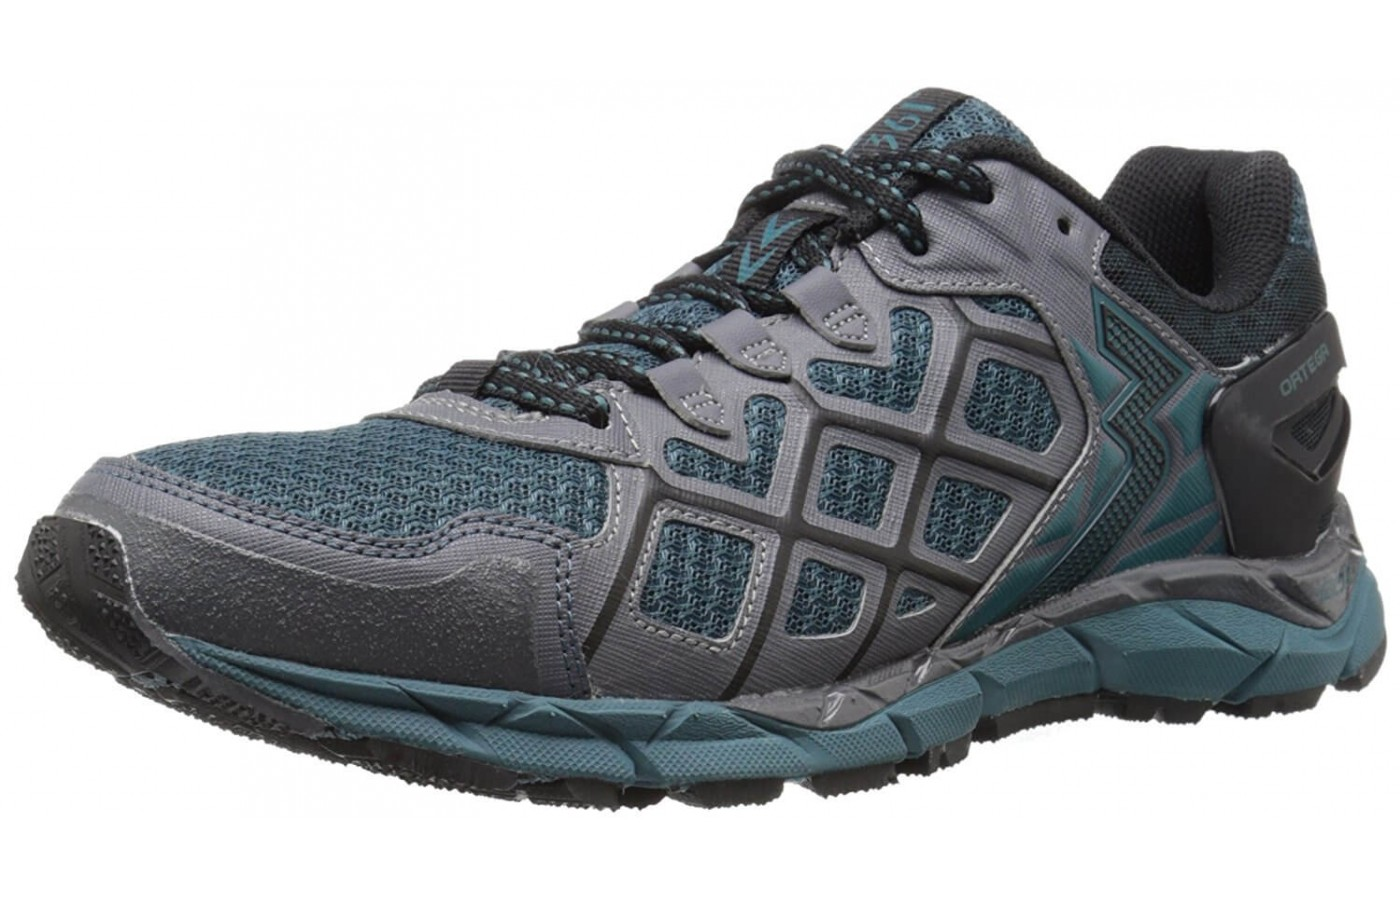 The Ortega is supportive and rugged and provides runners with a protective, comfortable ride.